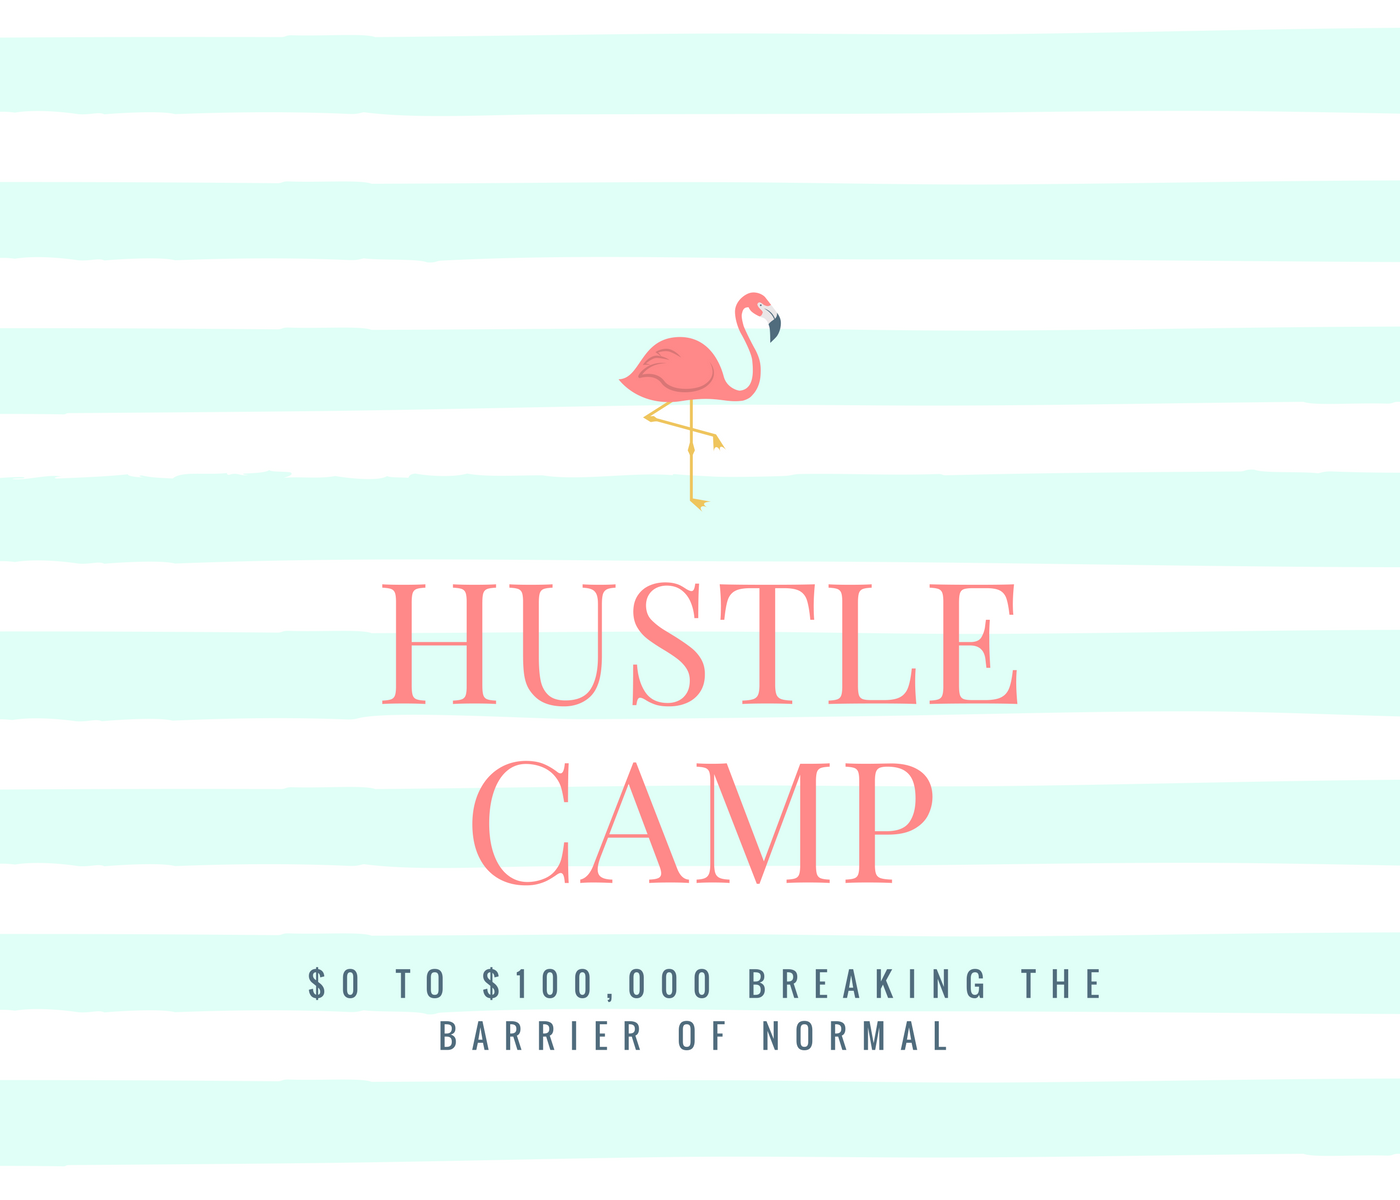 Hustle Camp $0 to $100,000 Breaking the Barrier of Normal